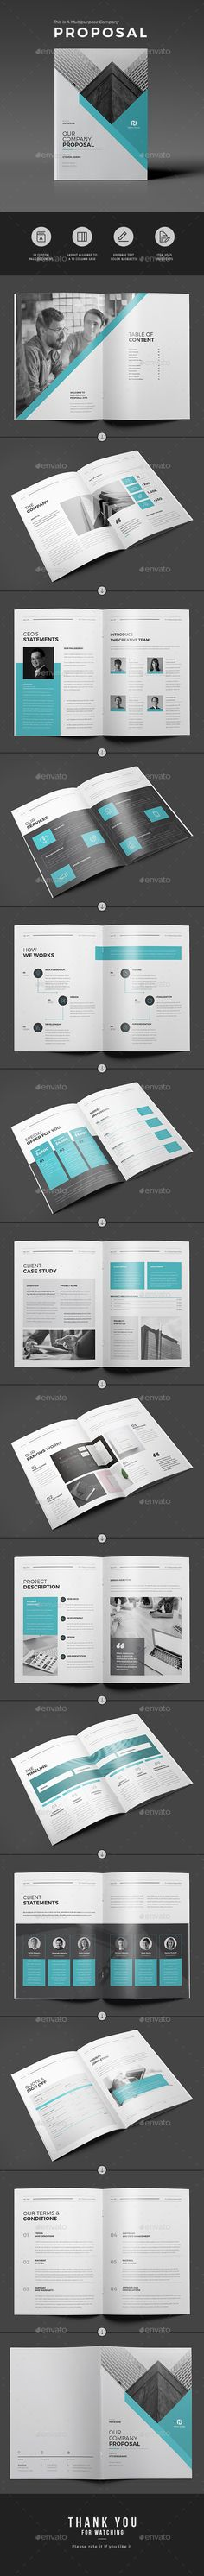 Proposal Proposals, Proposal templates and Brochures - professional proposal templates